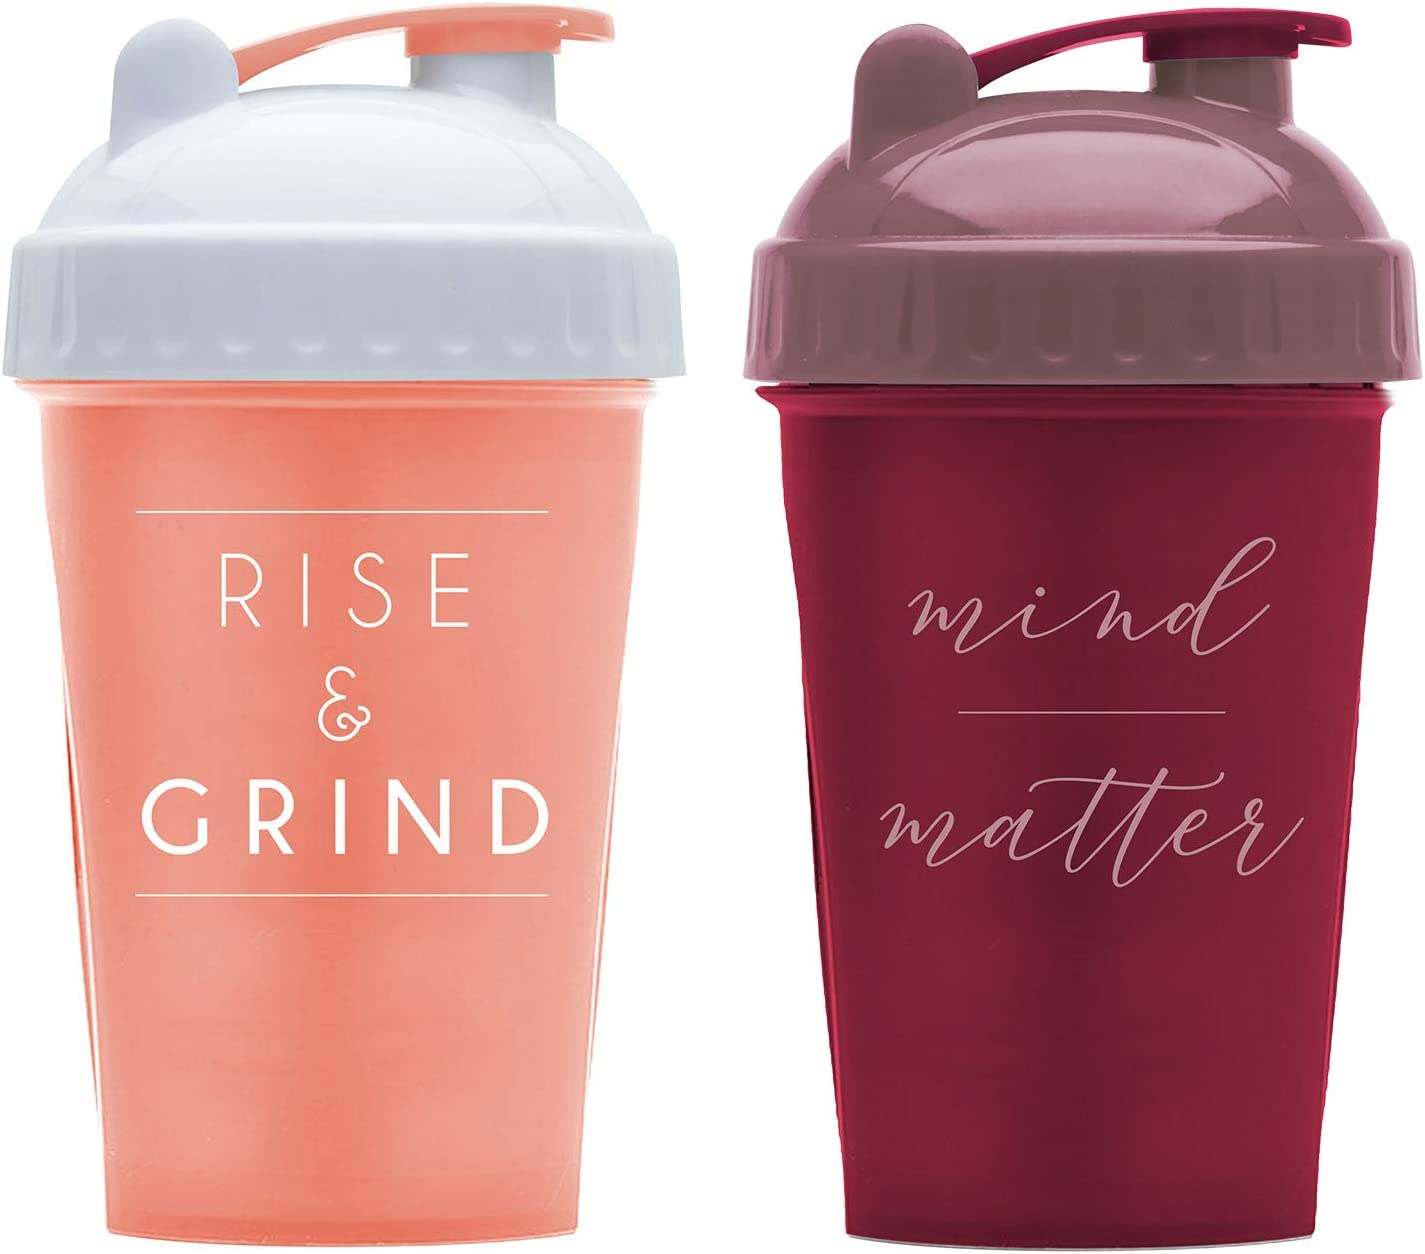 Motivational Quotes on Performa Perfect Shaker Bottle, 20 Ounce Classic Protein Shaker Bottle, Dishwasher Safe, Leak Proof, Multiple Sayings and Colors (Two Pack - Rise Coral & Mind Over Matter)